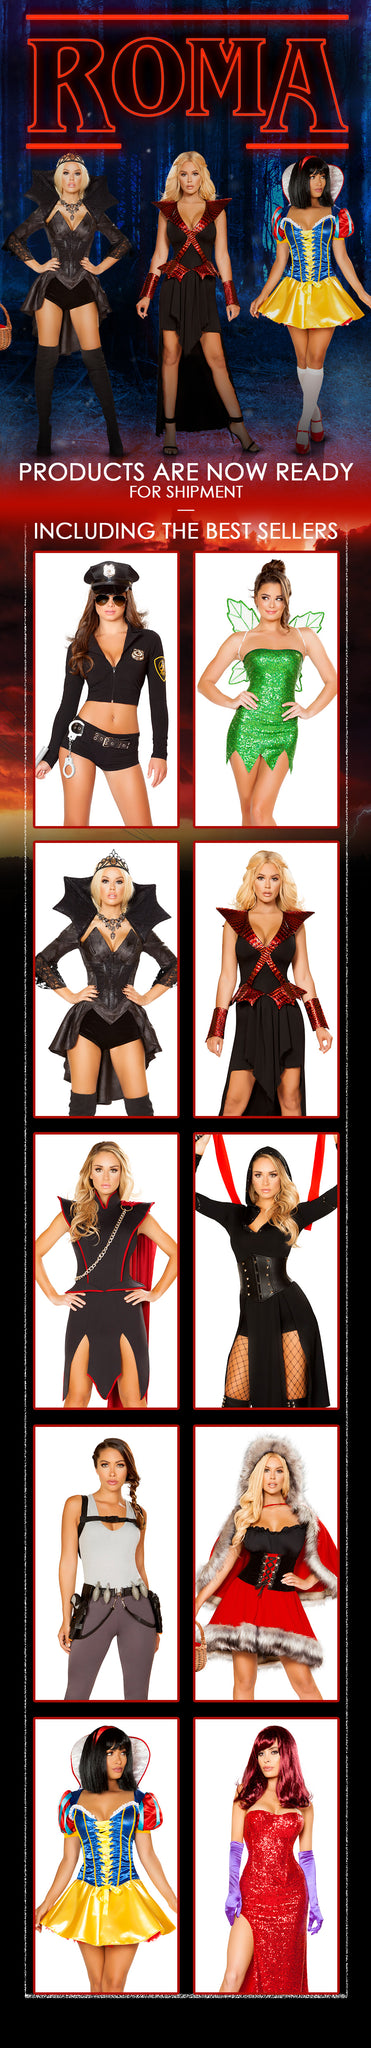 Roma's 2018 Halloween Costume Collection